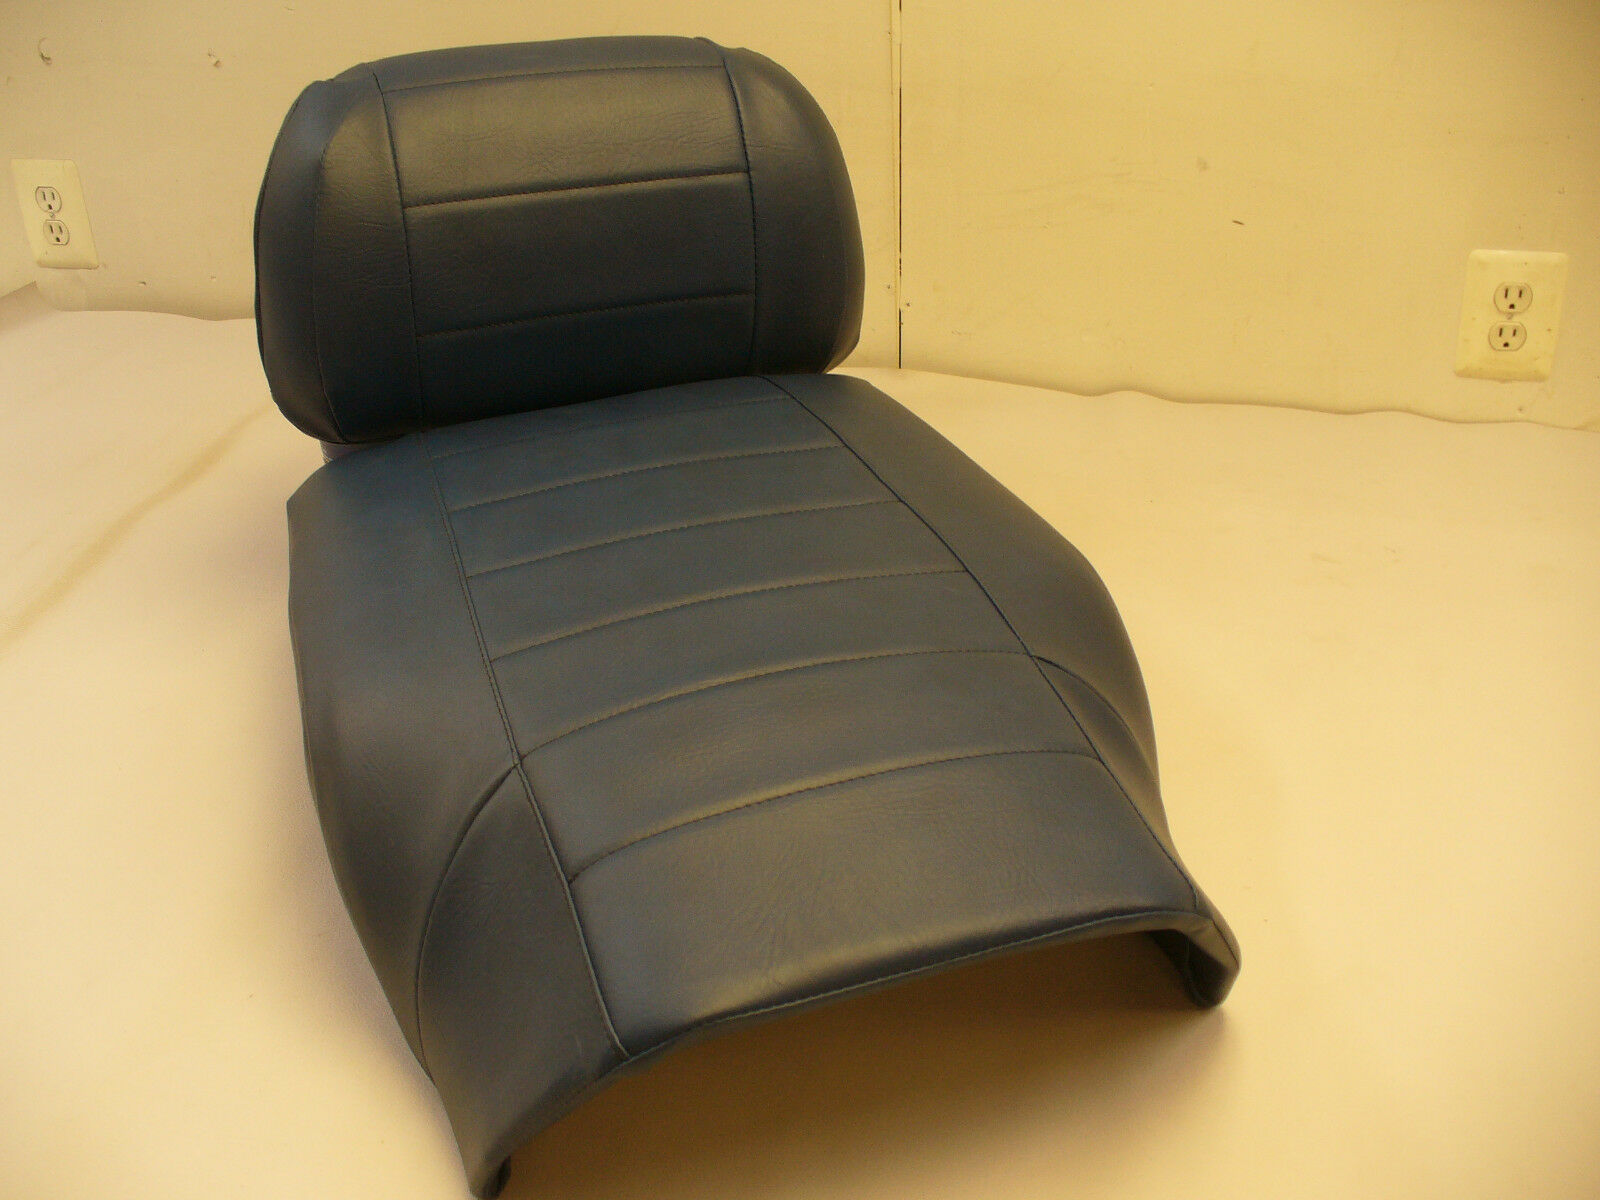 86-90 YAMAHA  INVITER blueE SNOWMOBILE SEAT COVER SET NEW